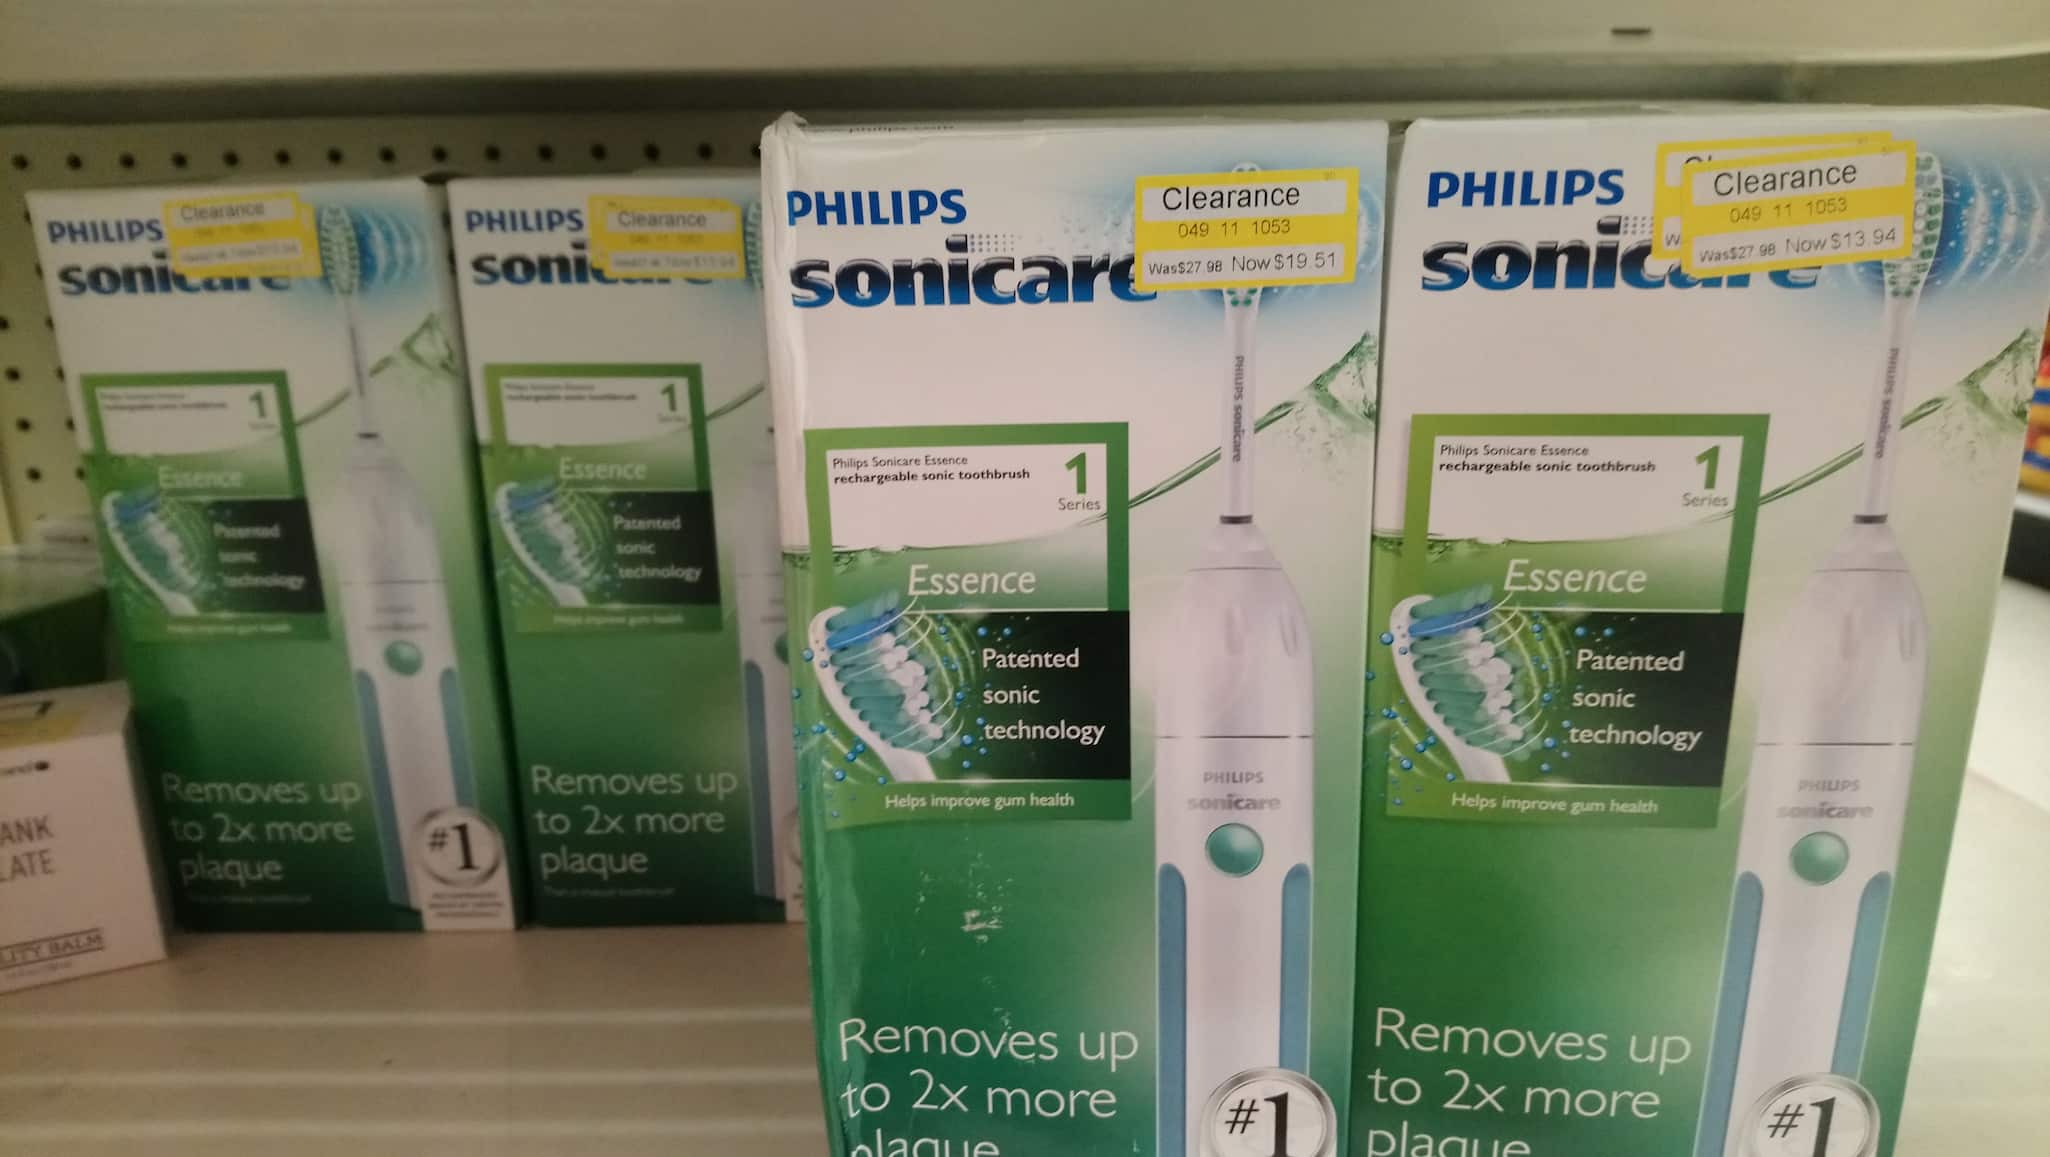 Philips Sonicare™ Essence Rechargeable Electric Toothbrush - $13.94 @ Target B&M YMMV